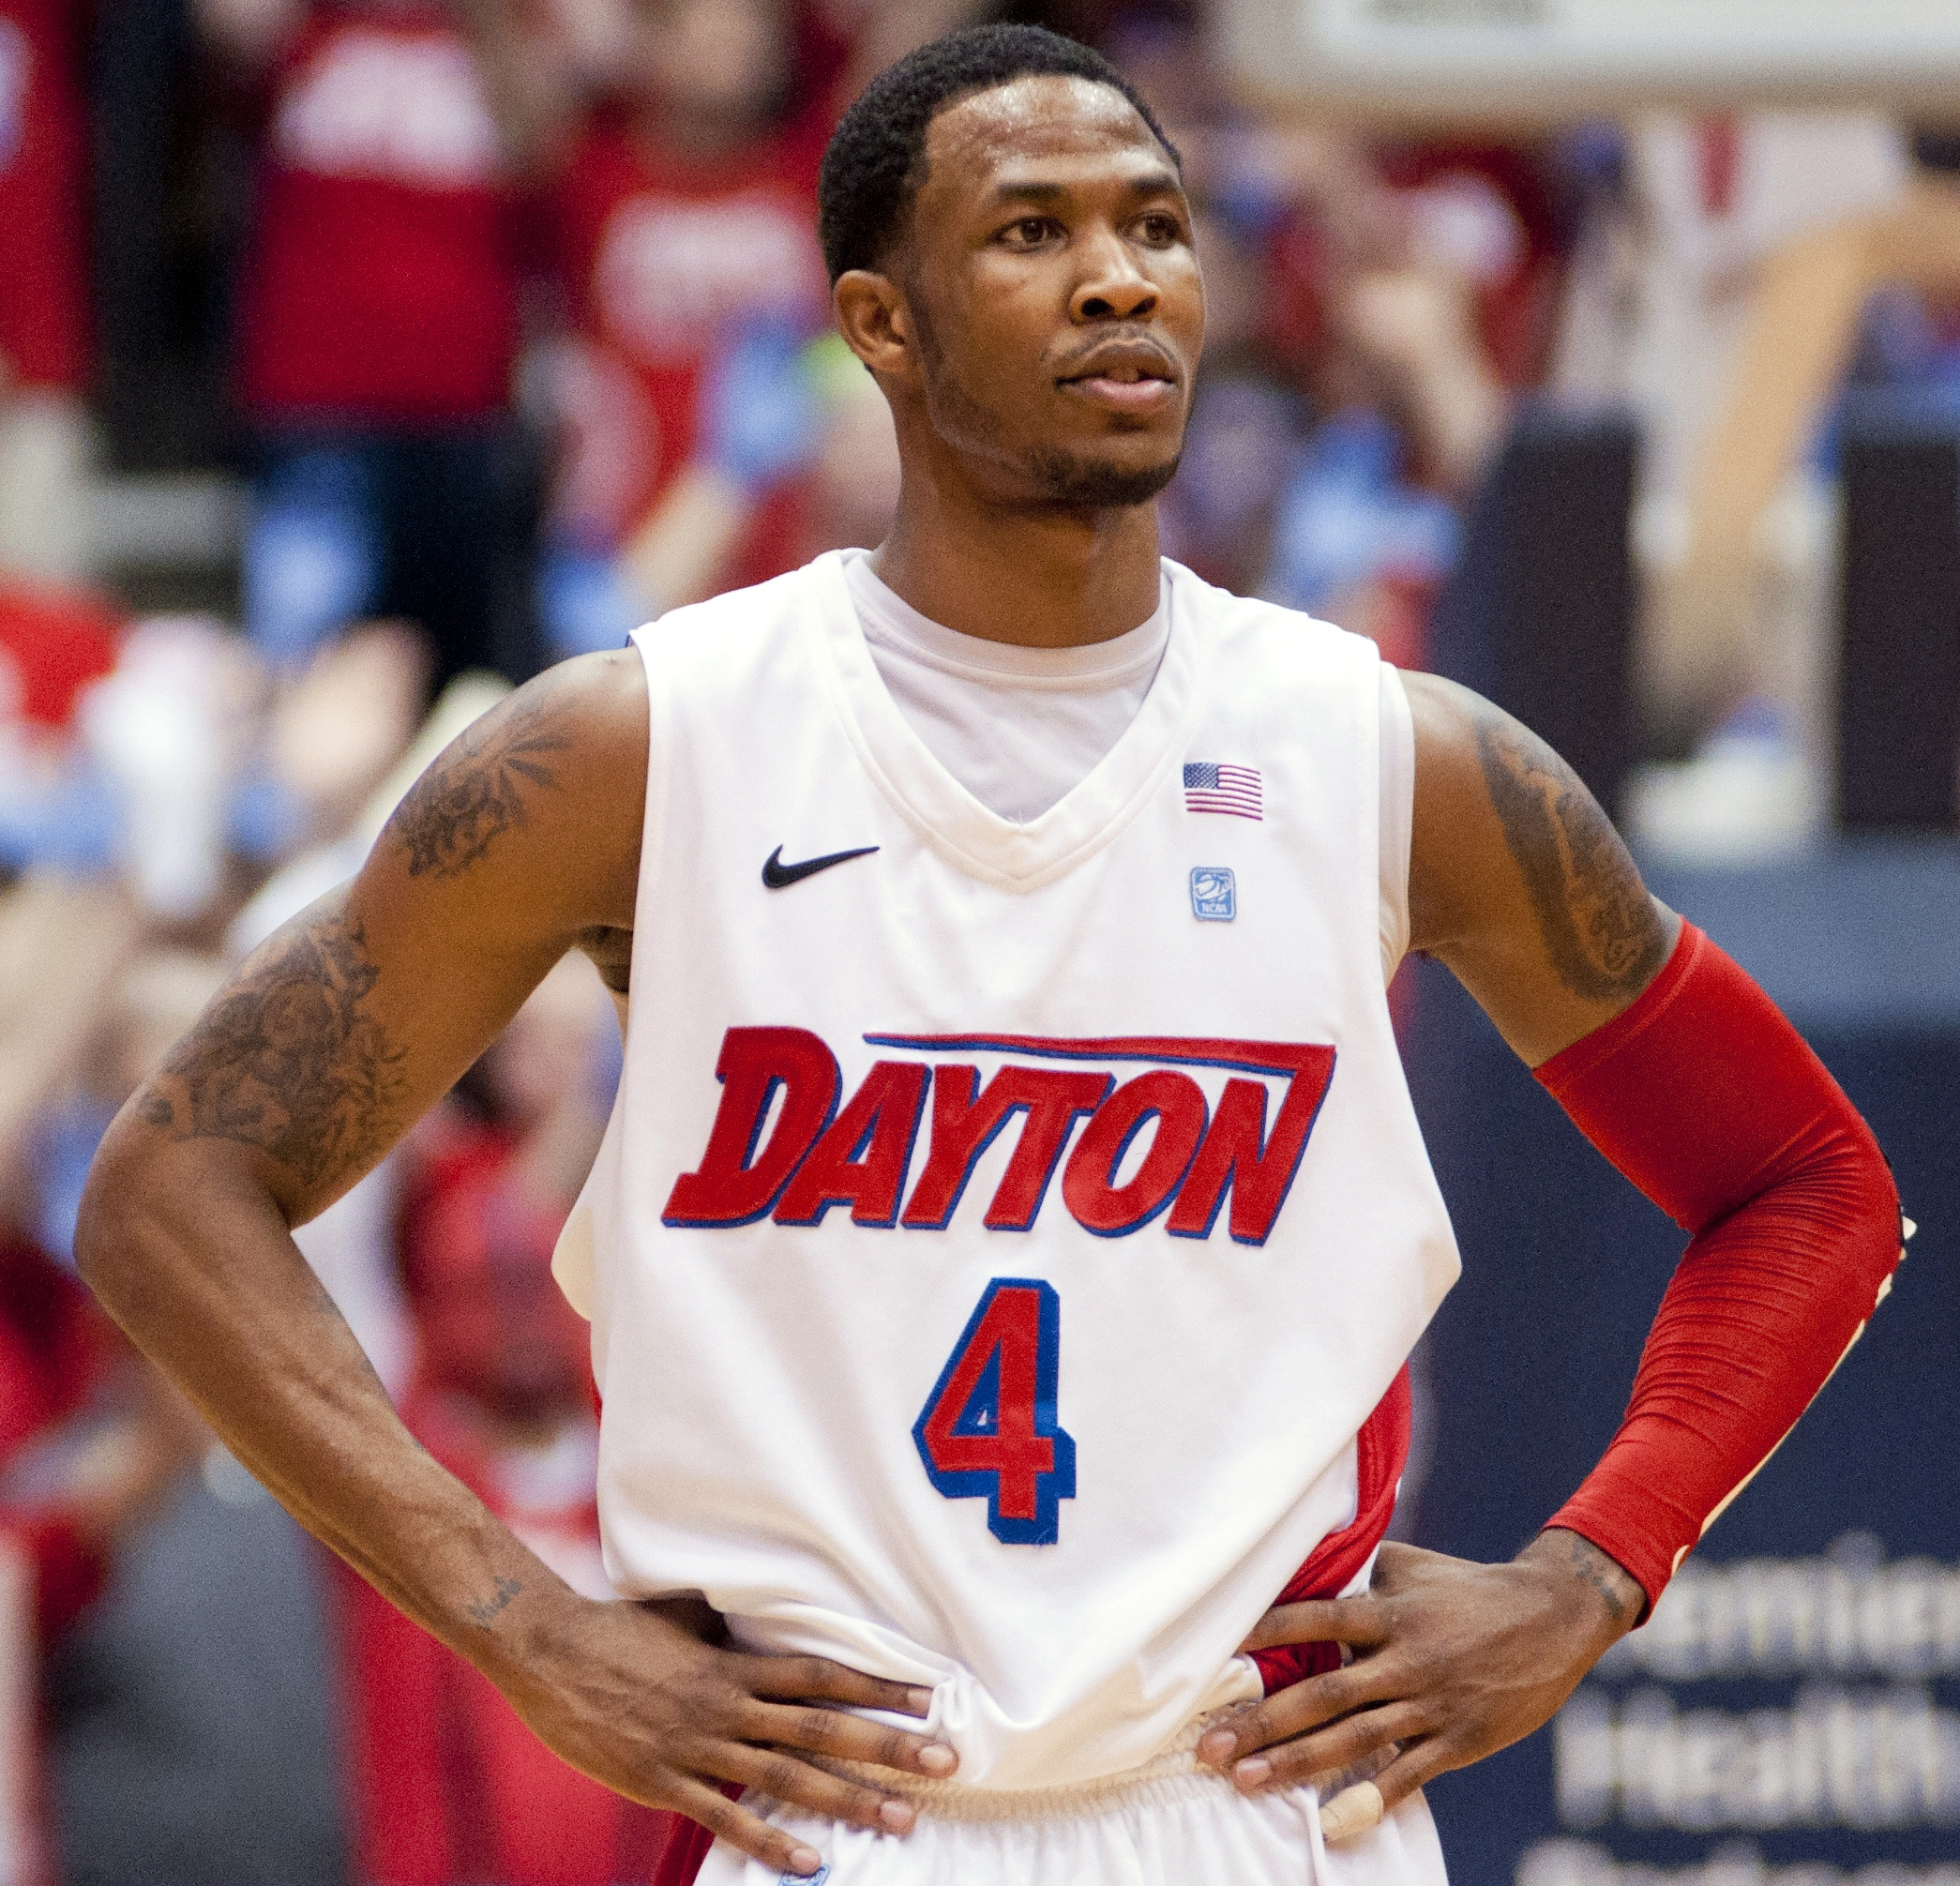 Johnson and Dayton leave no doubt in 76 43 handling of UMass